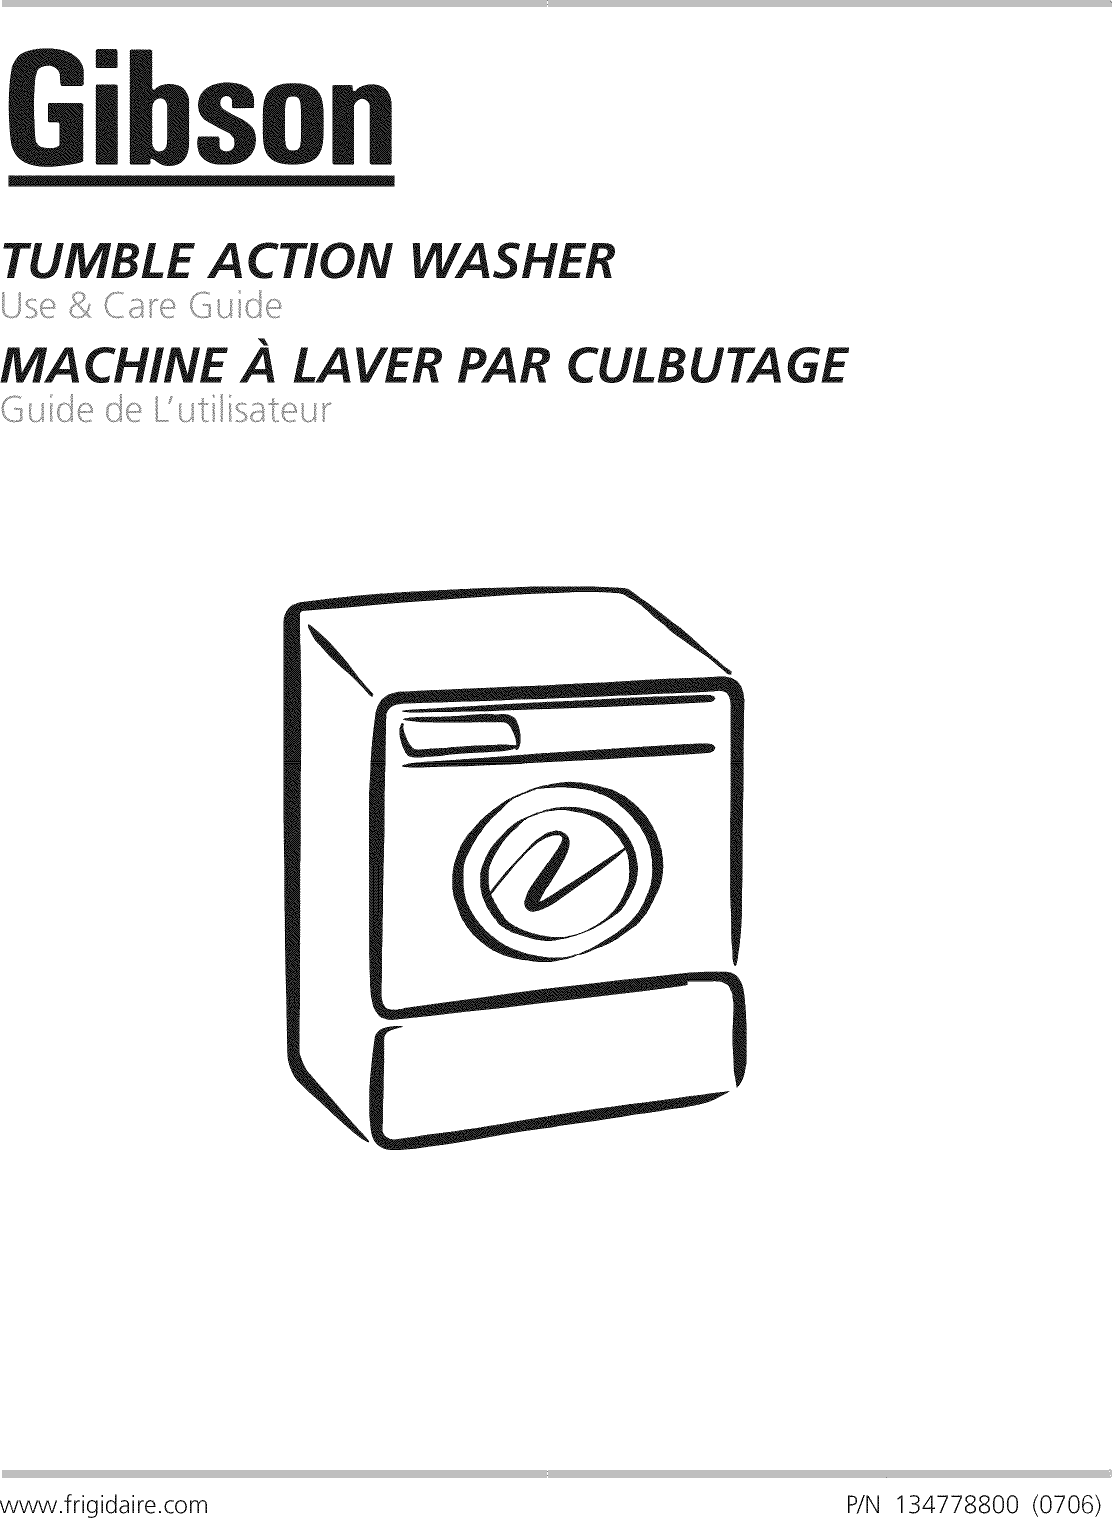 Gibson GTF1040FS2 User Manual WASHER Manuals And Guides